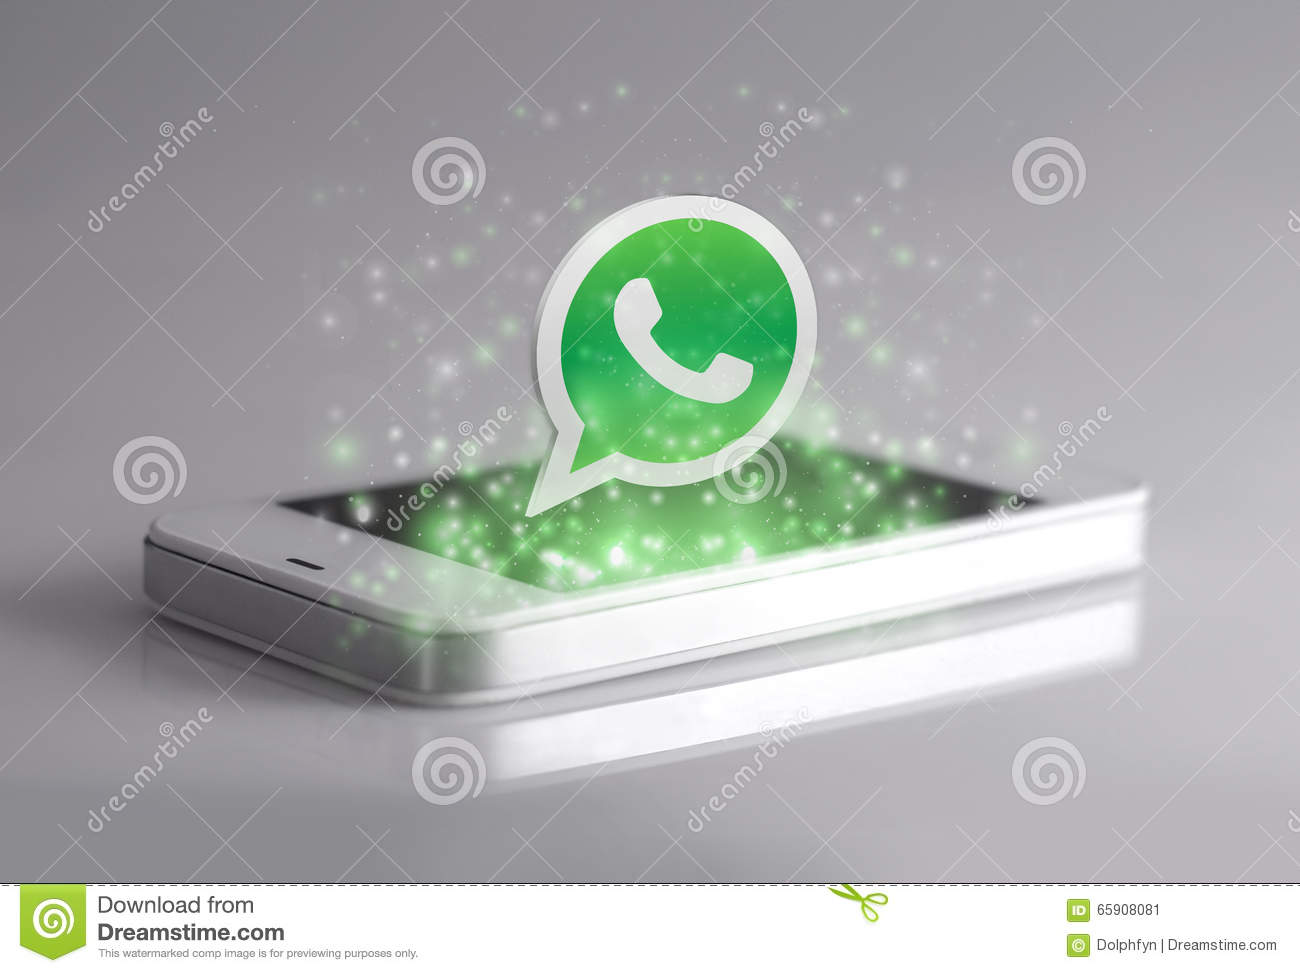 Whatsapp Stock Illustrations     927 Whatsapp Stock Illustrations     Whatsapp is famous instant messaging application for smartphones  Johor   Malaysia   Jan 1